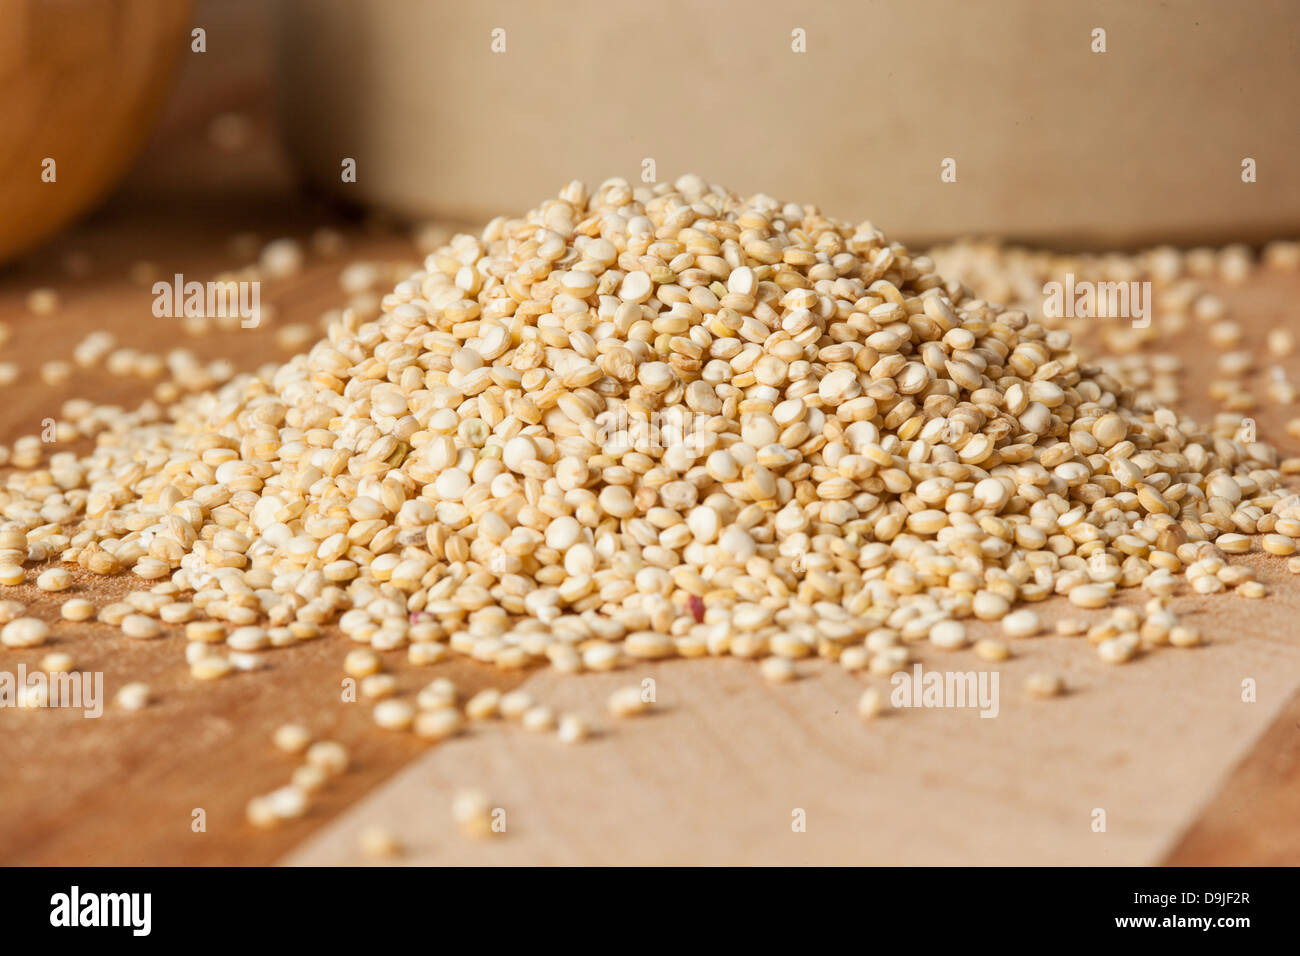 Raw Organic Quinoa Seeds against a background - Stock Image